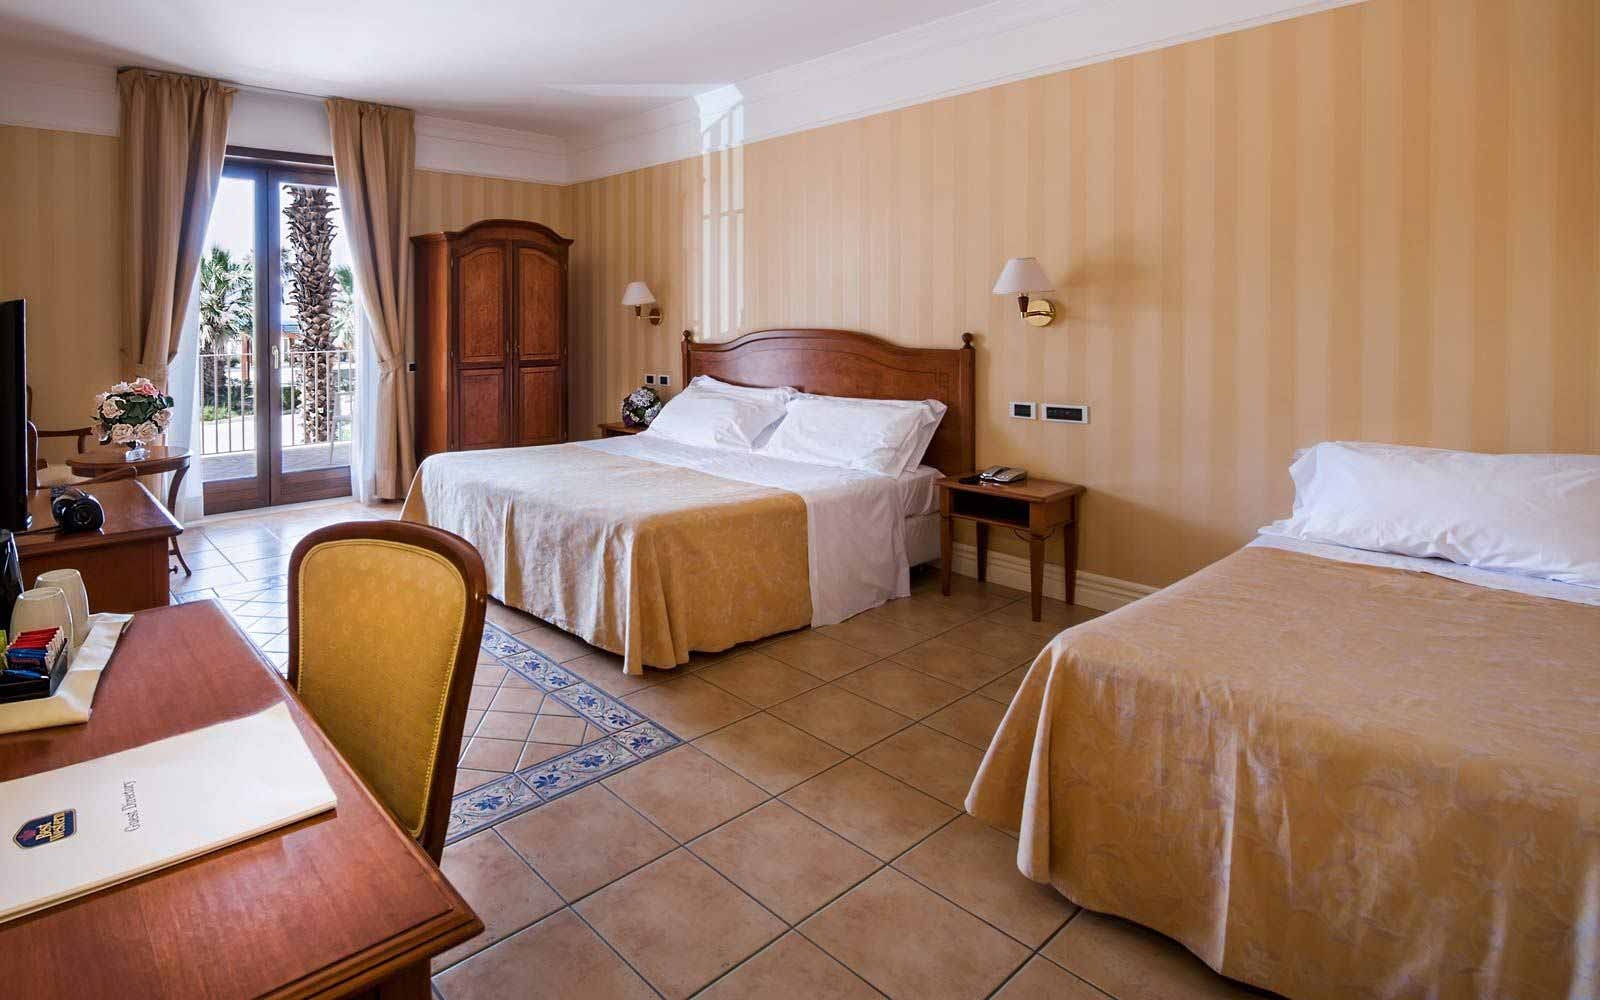 Triple room at Dioscuri Bay Palace